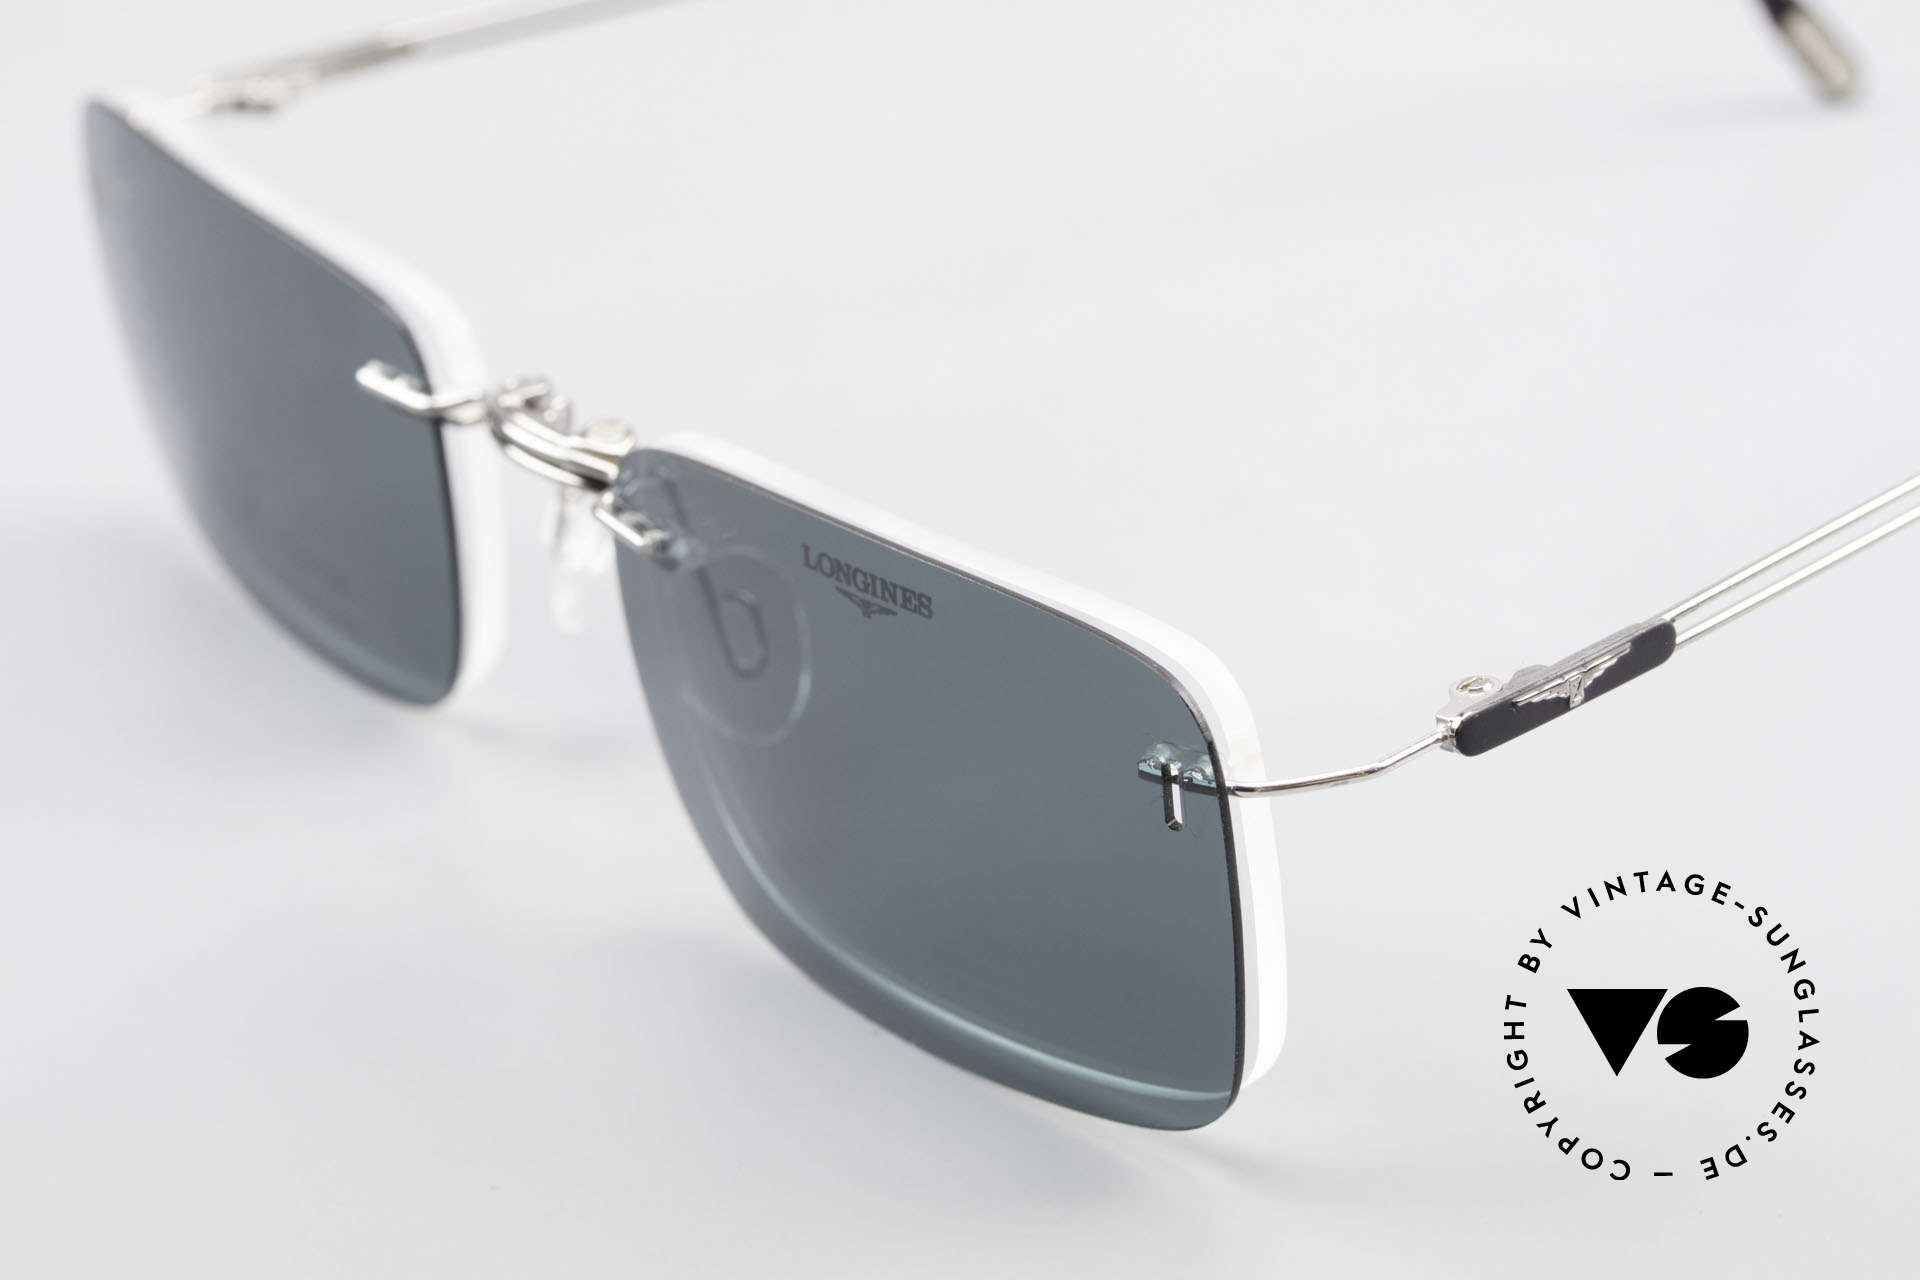 Longines 4367 Rimless Specs Polarized Clip, Size: large, Made for Men